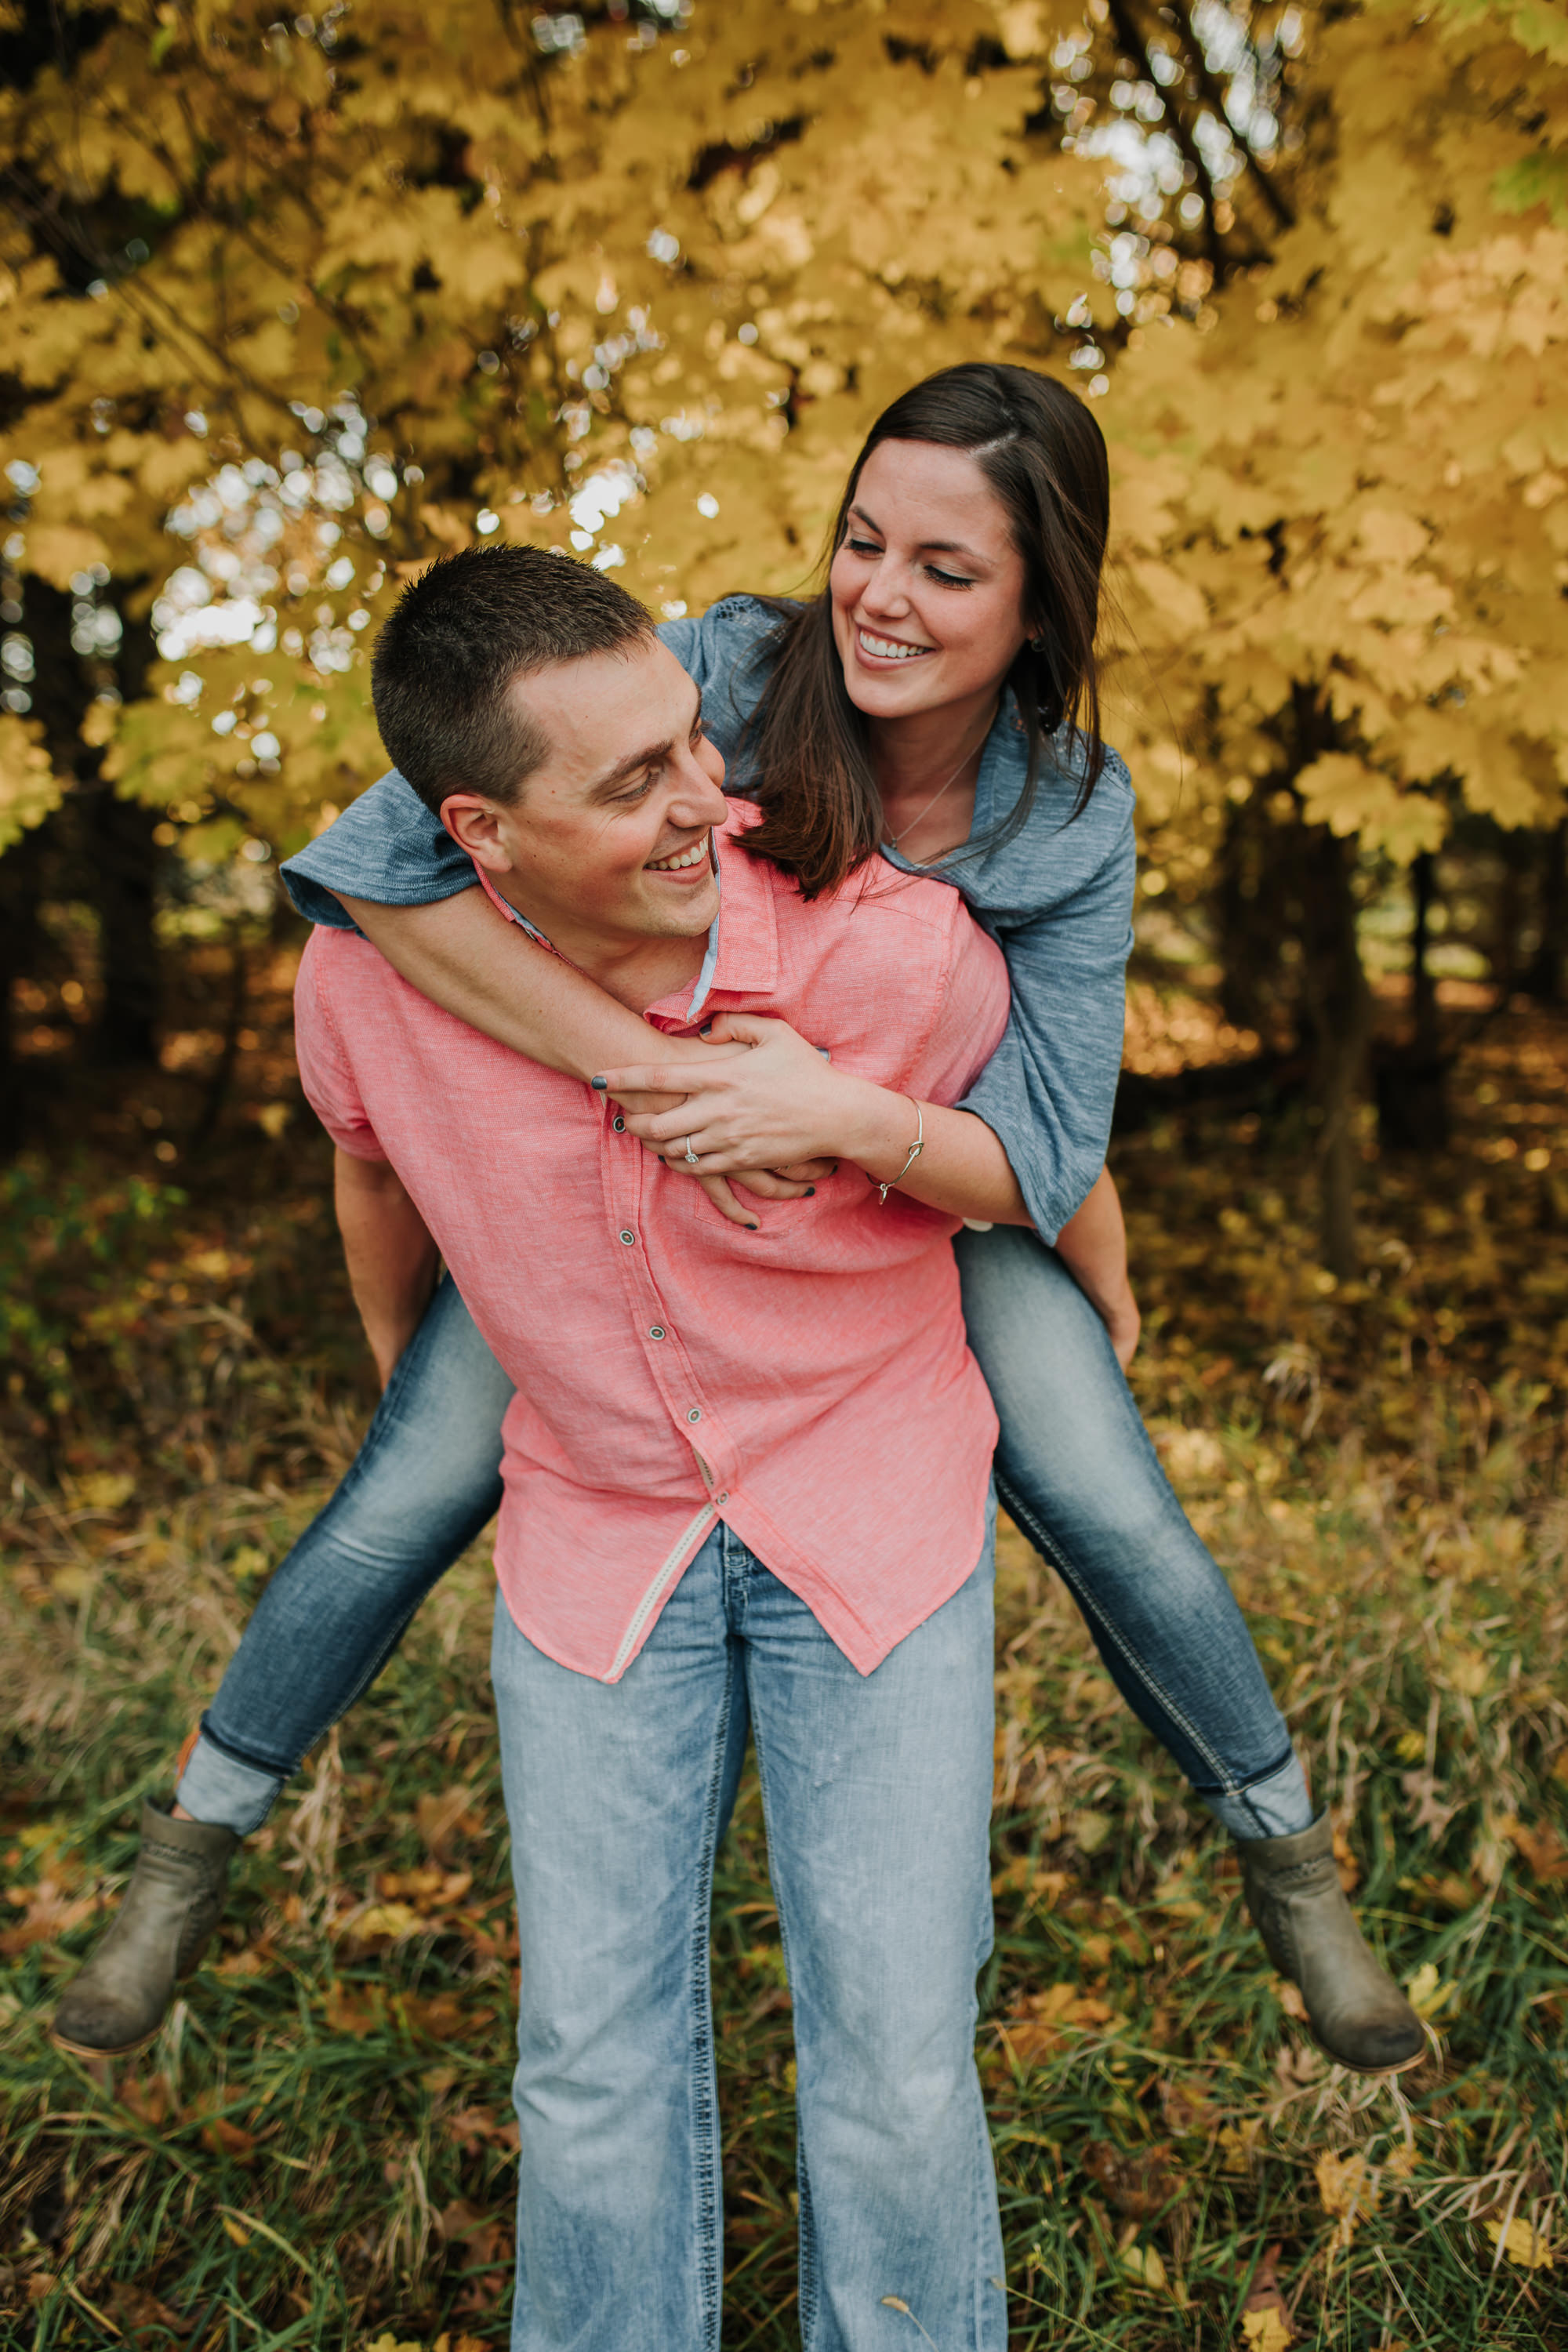 Hannah & Brett - Engaged - Nathaniel Jensen Photography - Omaha Nebraska Wedding Photograper - Omaha Nebraska Engagement Session - Chalco Hills Engagement Session-83.jpg